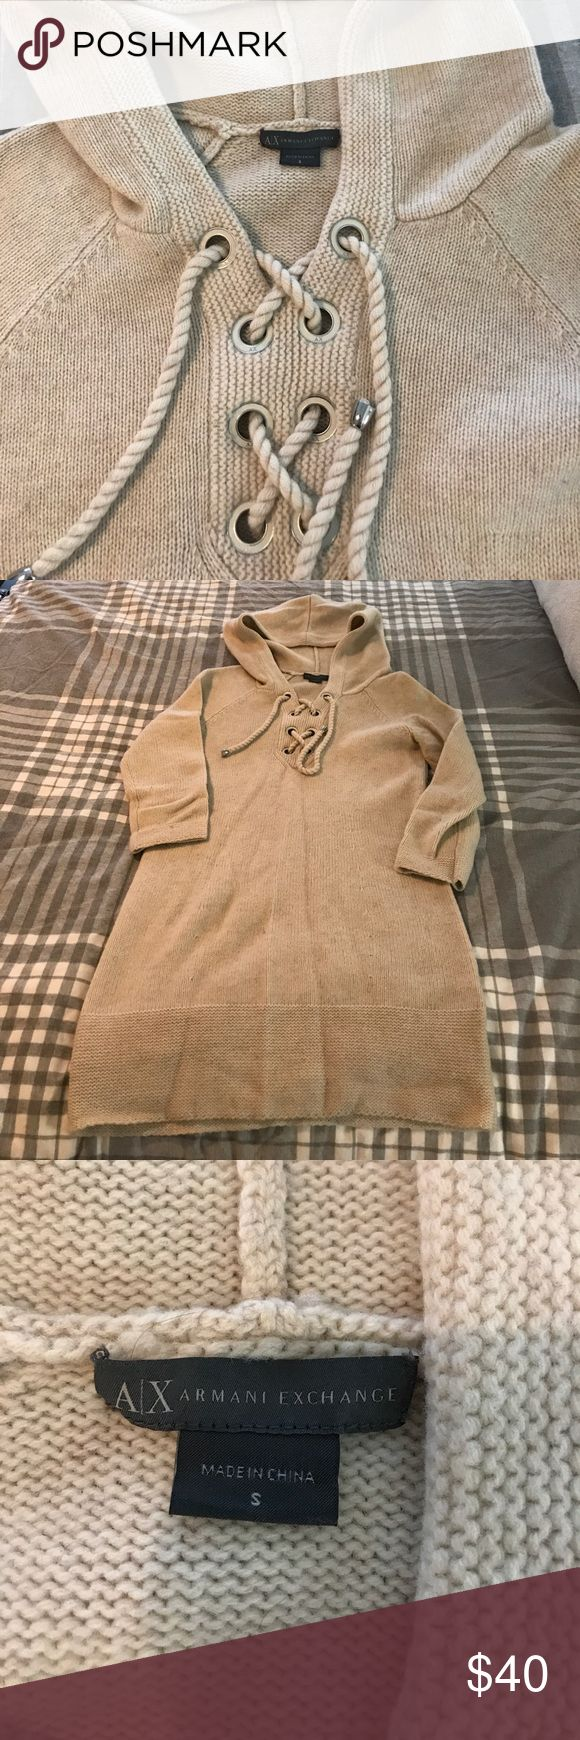 Armani Exchange hooded sweater dress S EUC An adorable Armani Exchange hooded sweater dress S EUC.  Looks great with leggings and boots for the fall and winter.  100% wool makes it super warm too! A/X Armani Exchange Sweaters